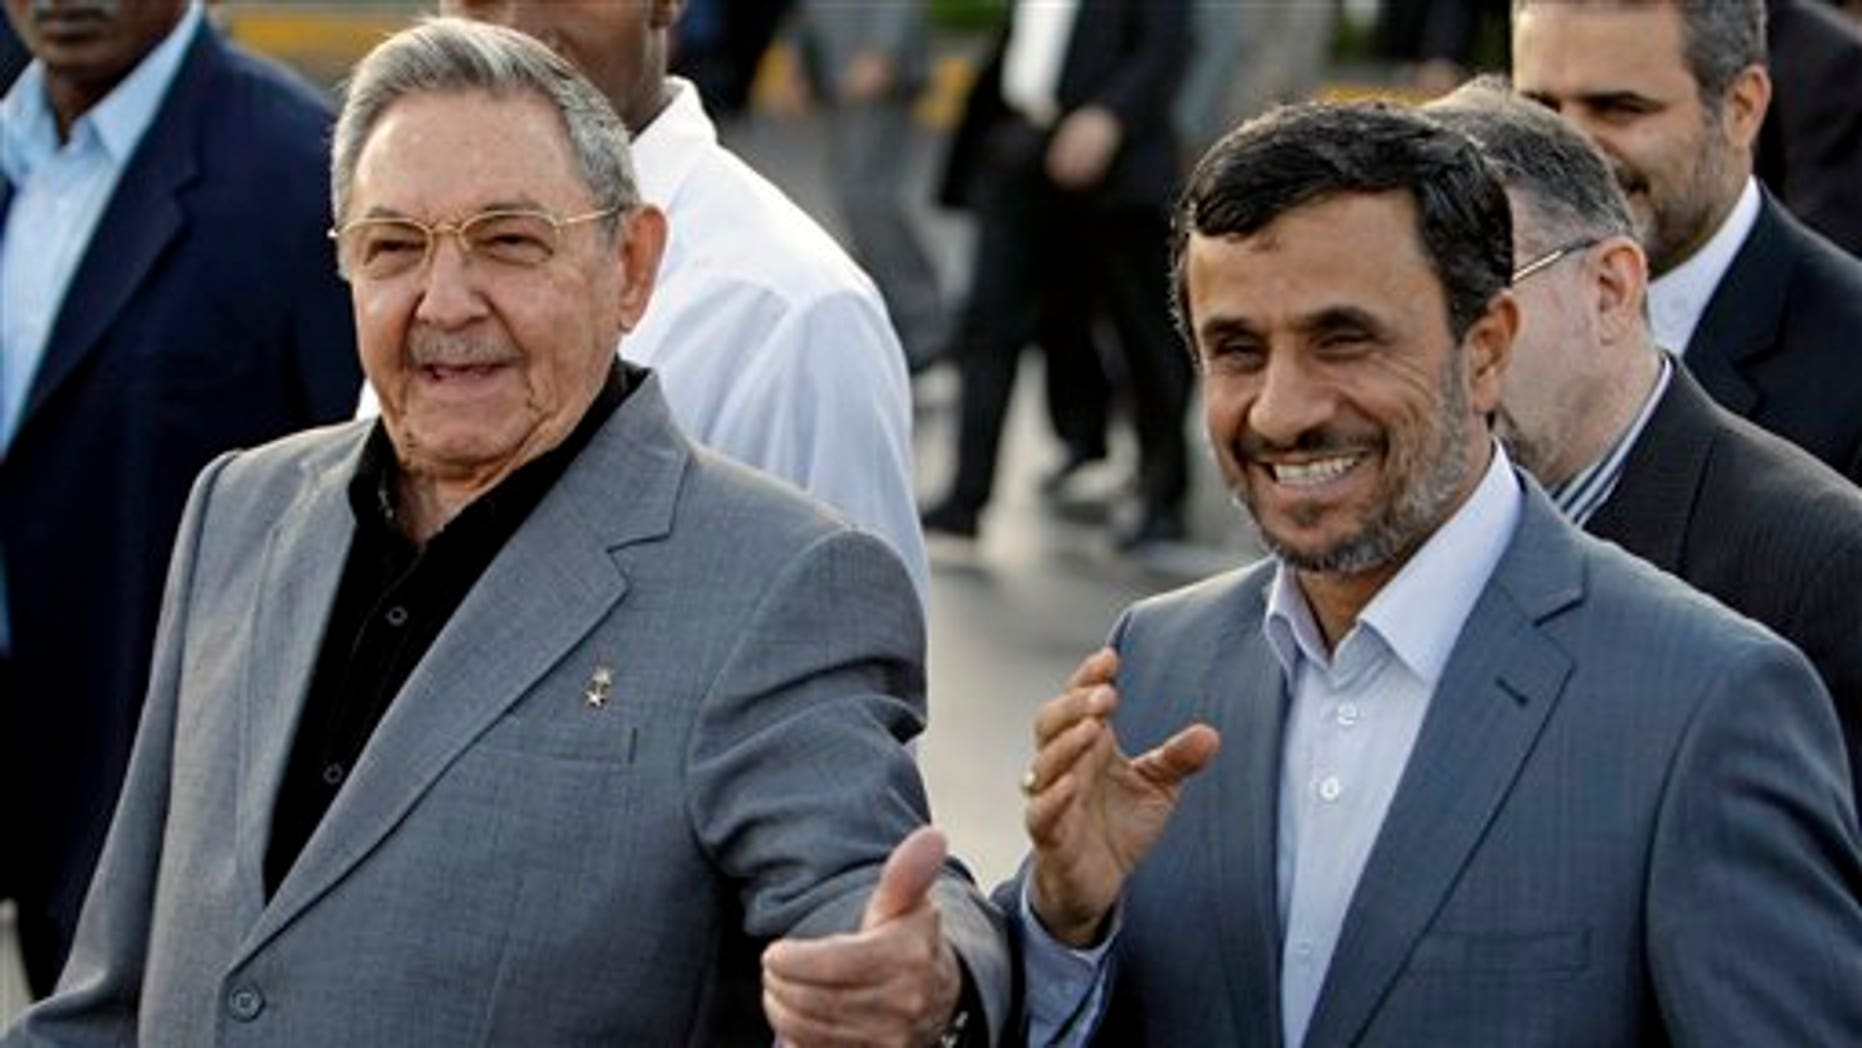 Jan. 12: Cuba's President Raul Castro, left, and  Iran's President Mahmoud Ahmadinejad gesture before Ahmadinejad's departure at the Jose Marti international airport in Havana, Cuba.